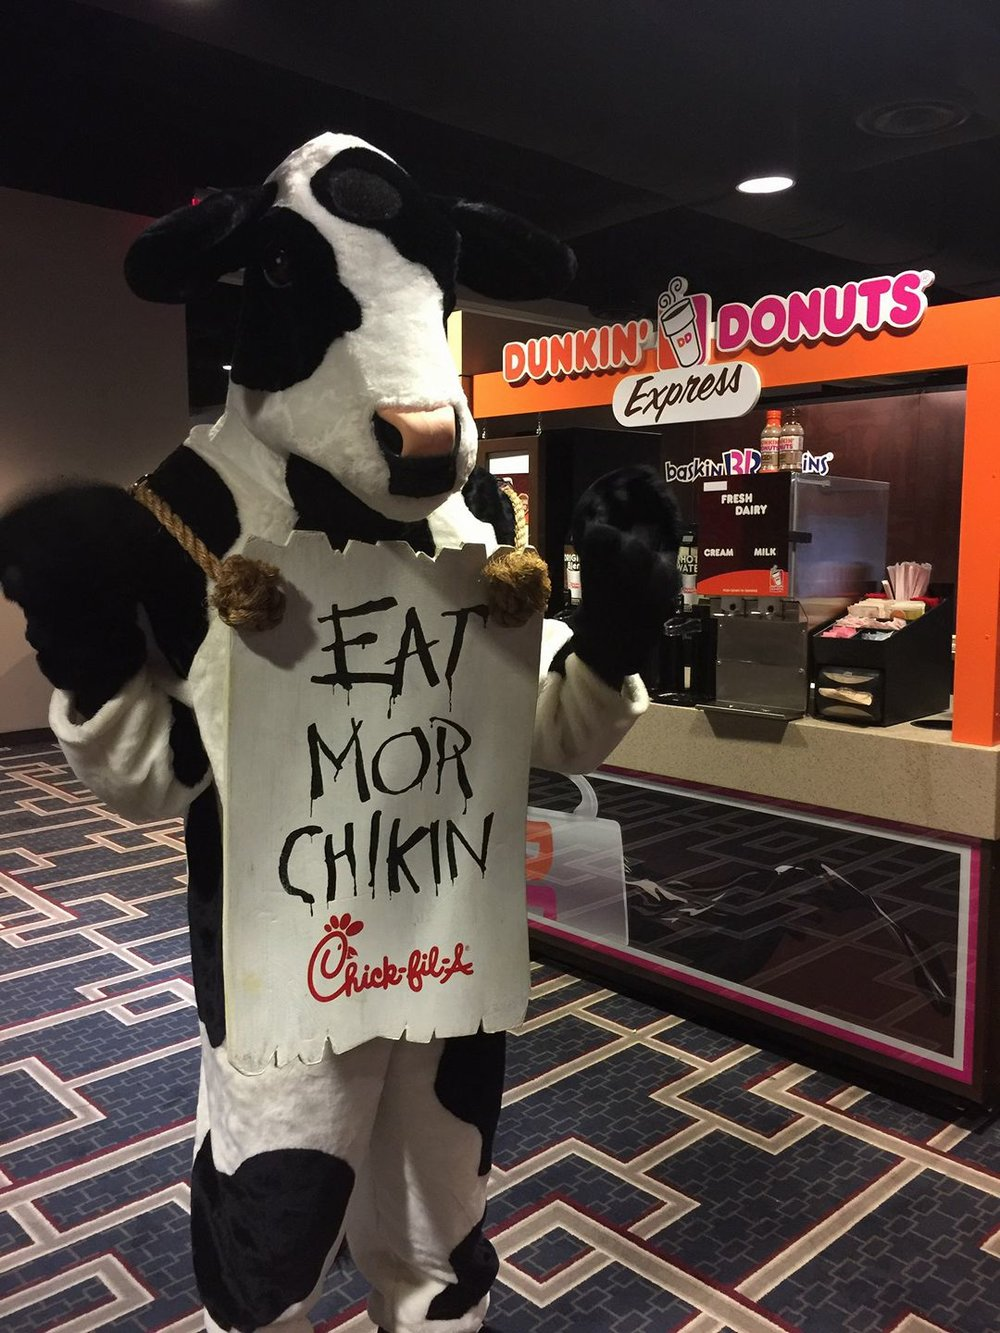 Clients meeting clients! The Carriage Works has built a few different products for Chick-fil-A. We are so glad the cow stopped by for a cup of Dunkin'!